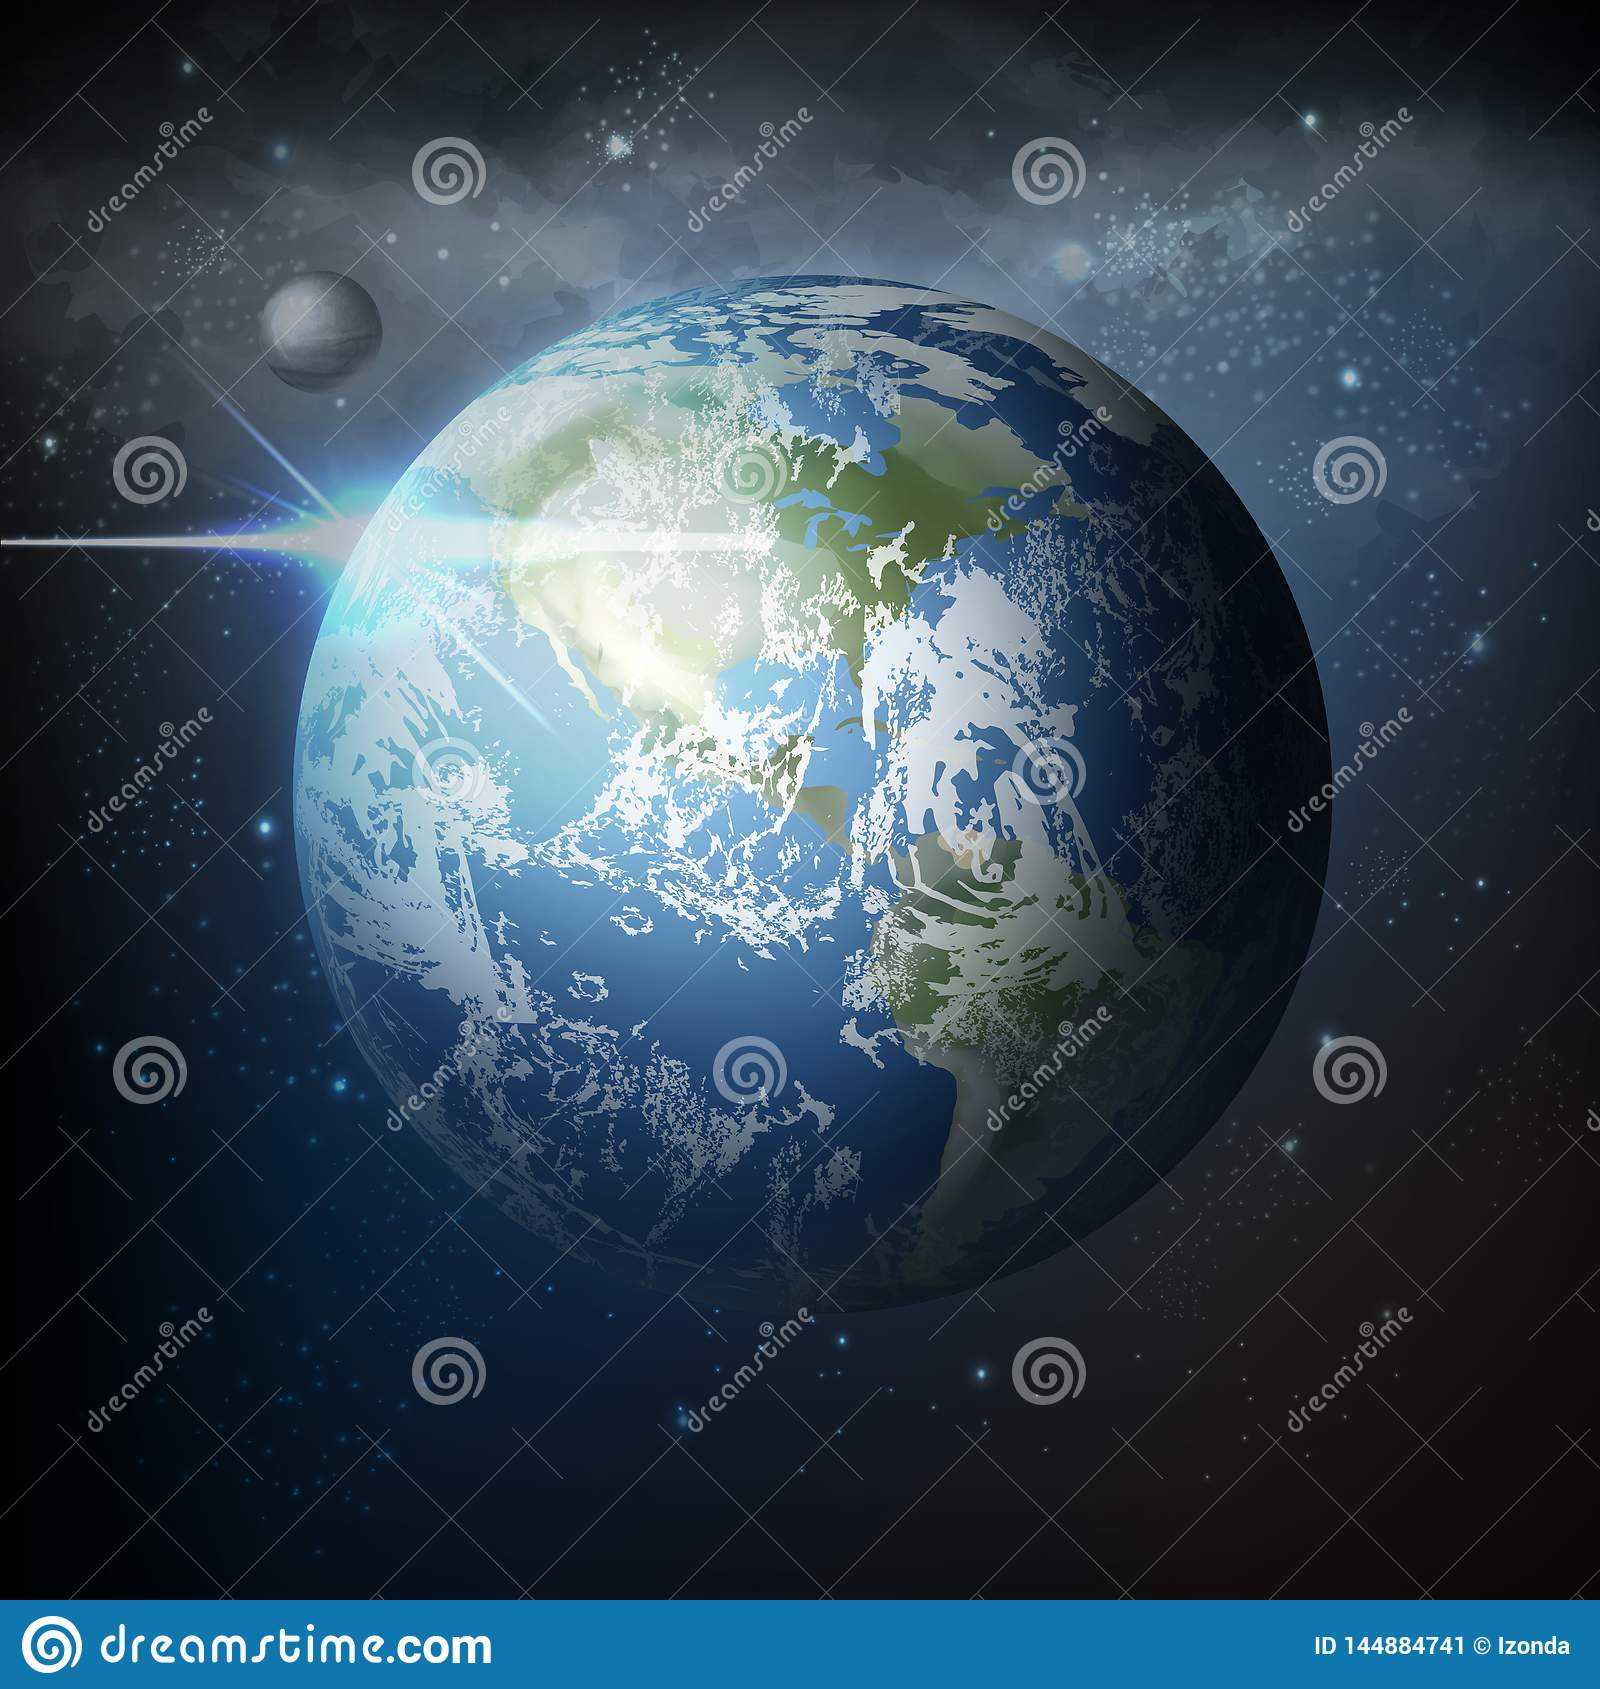 Vector illustration view from space of realistic planet earth with moon in universe with milky way on background